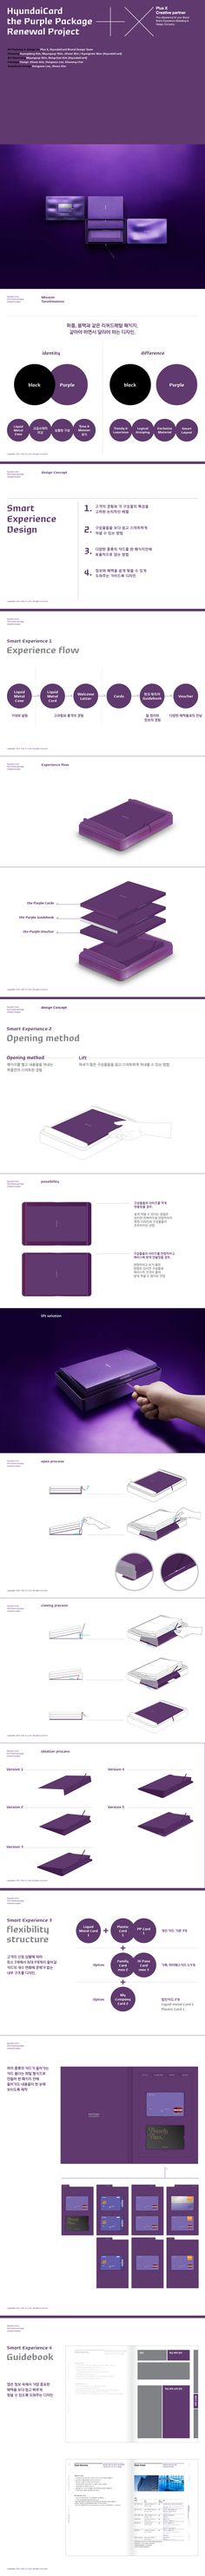 HyundaiCard the Purple Package eXperience Design 2011 on Behance